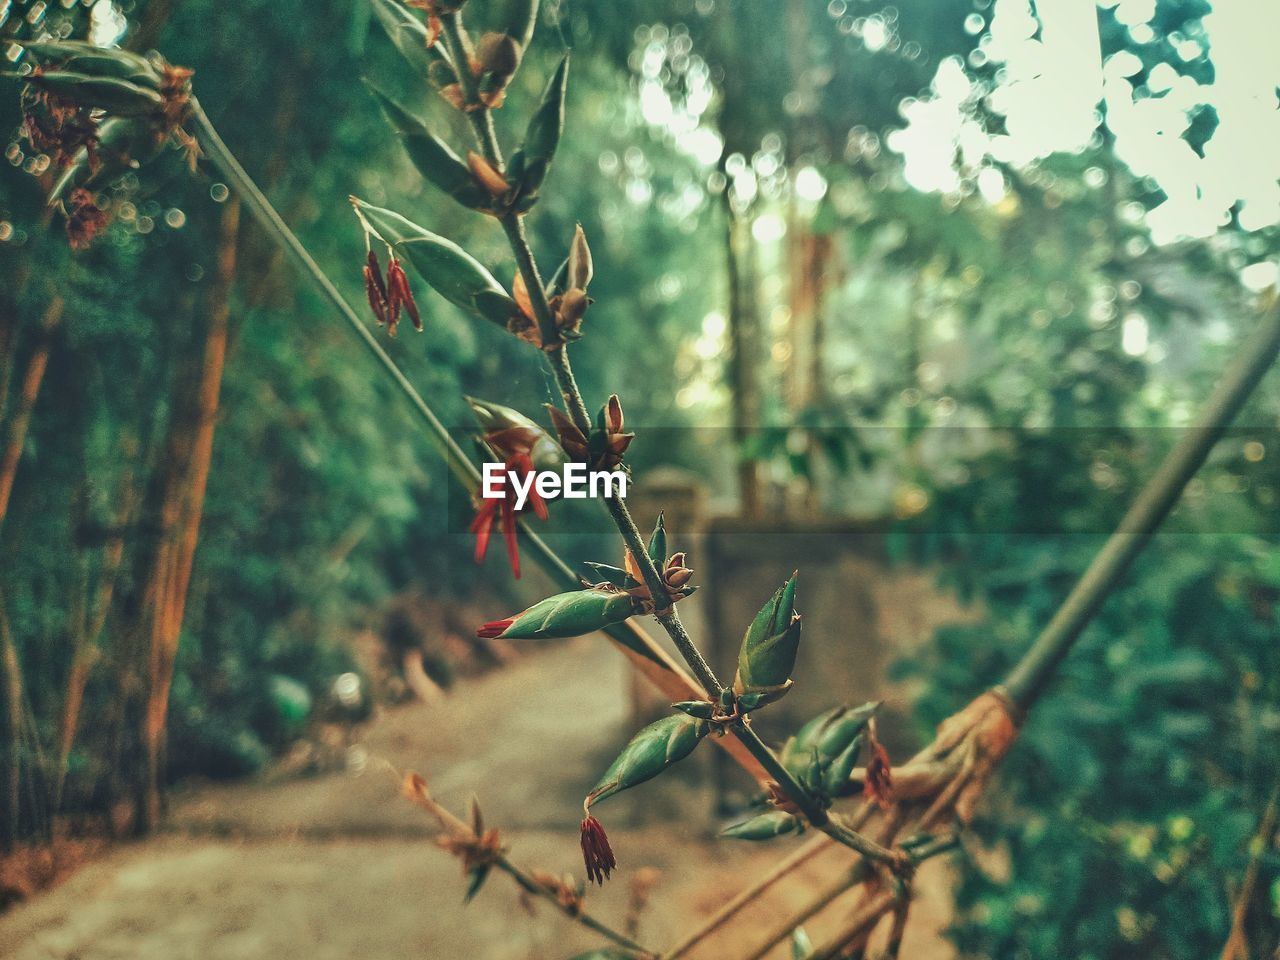 plant, growth, focus on foreground, beauty in nature, nature, day, no people, tree, close-up, green color, plant part, leaf, tranquility, outdoors, selective focus, flower, plant stem, freshness, flowering plant, land